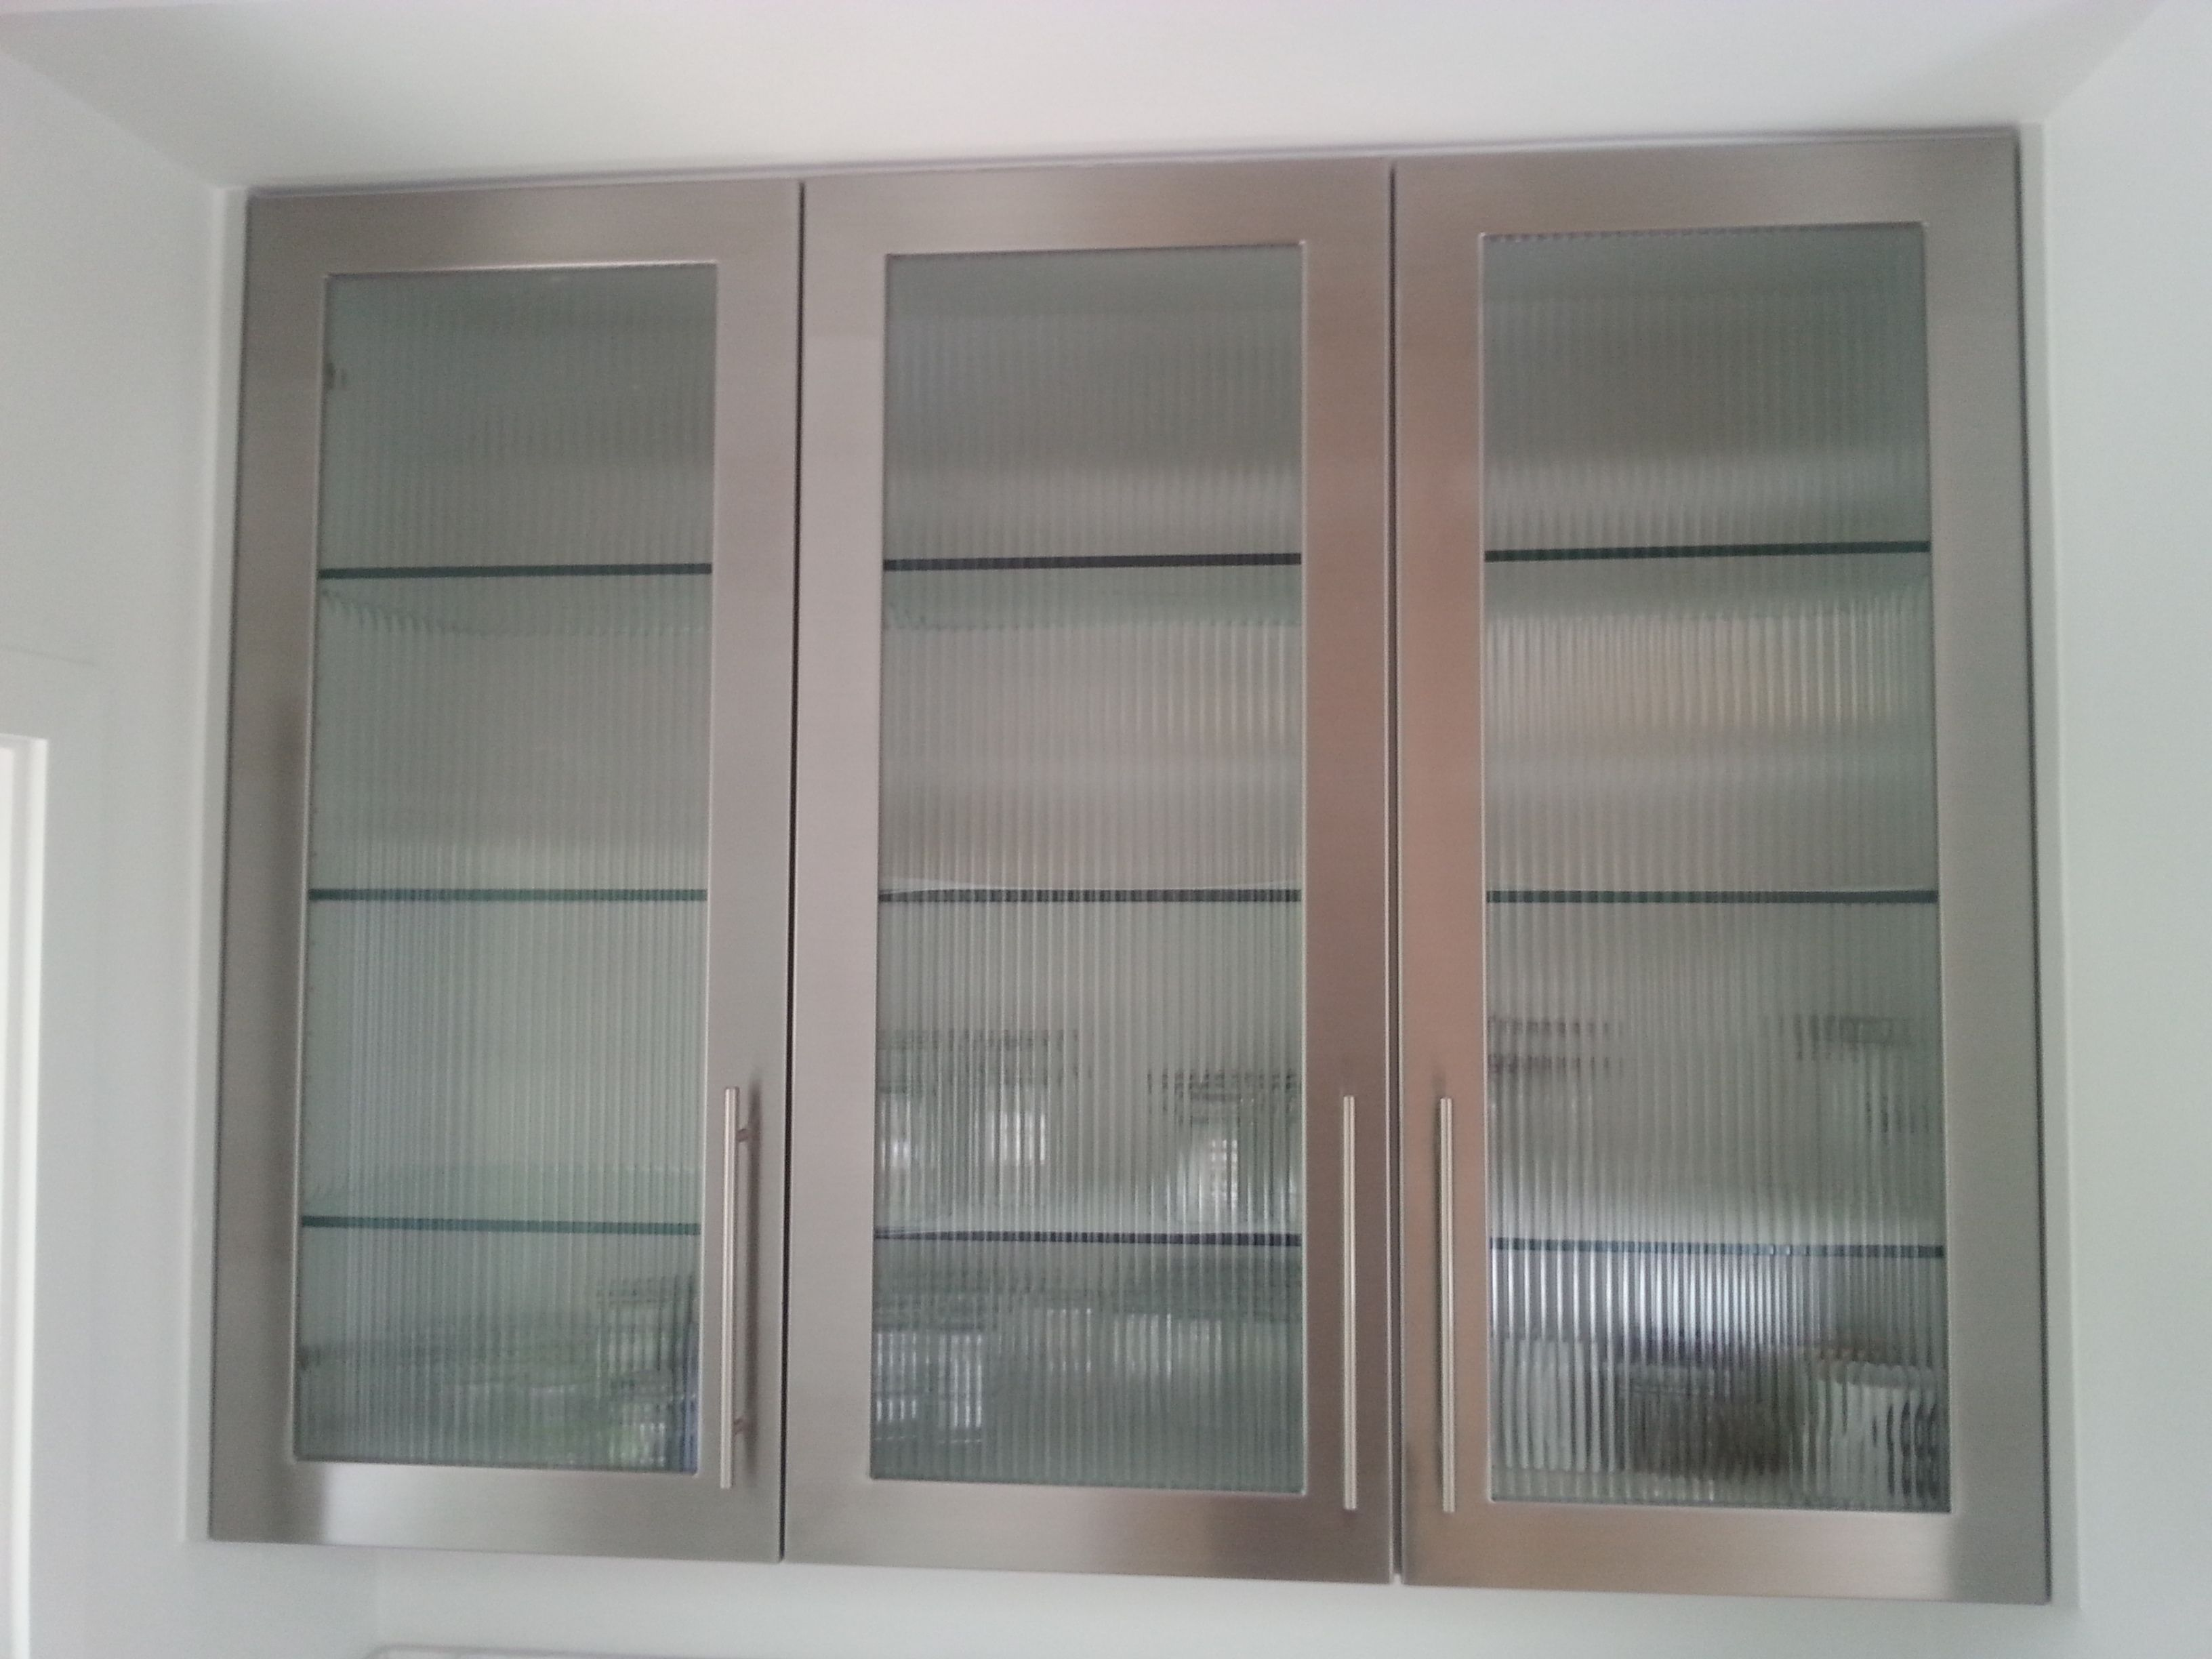 Stainless Steel Kitchen Cabinet Doors Stainless Steel Project Photos | Glass kitchen cabidoors